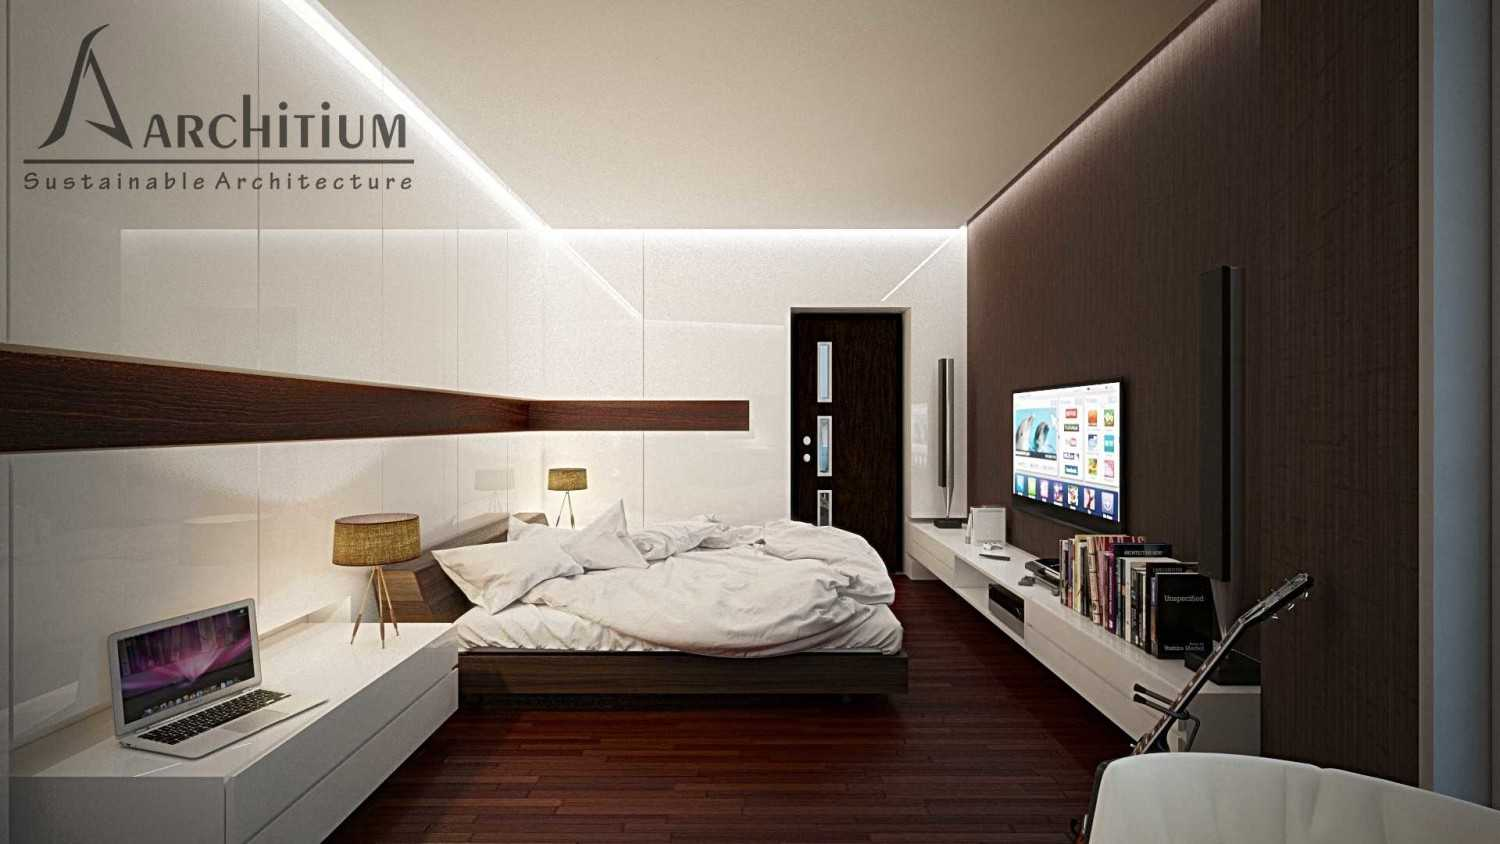 Architium Design Penthouse At Regatta Apartment Regatta Apartment, Jakarta Regatta Apartment, Jakarta Bedroom-A-2 Minimalis,wood 27415